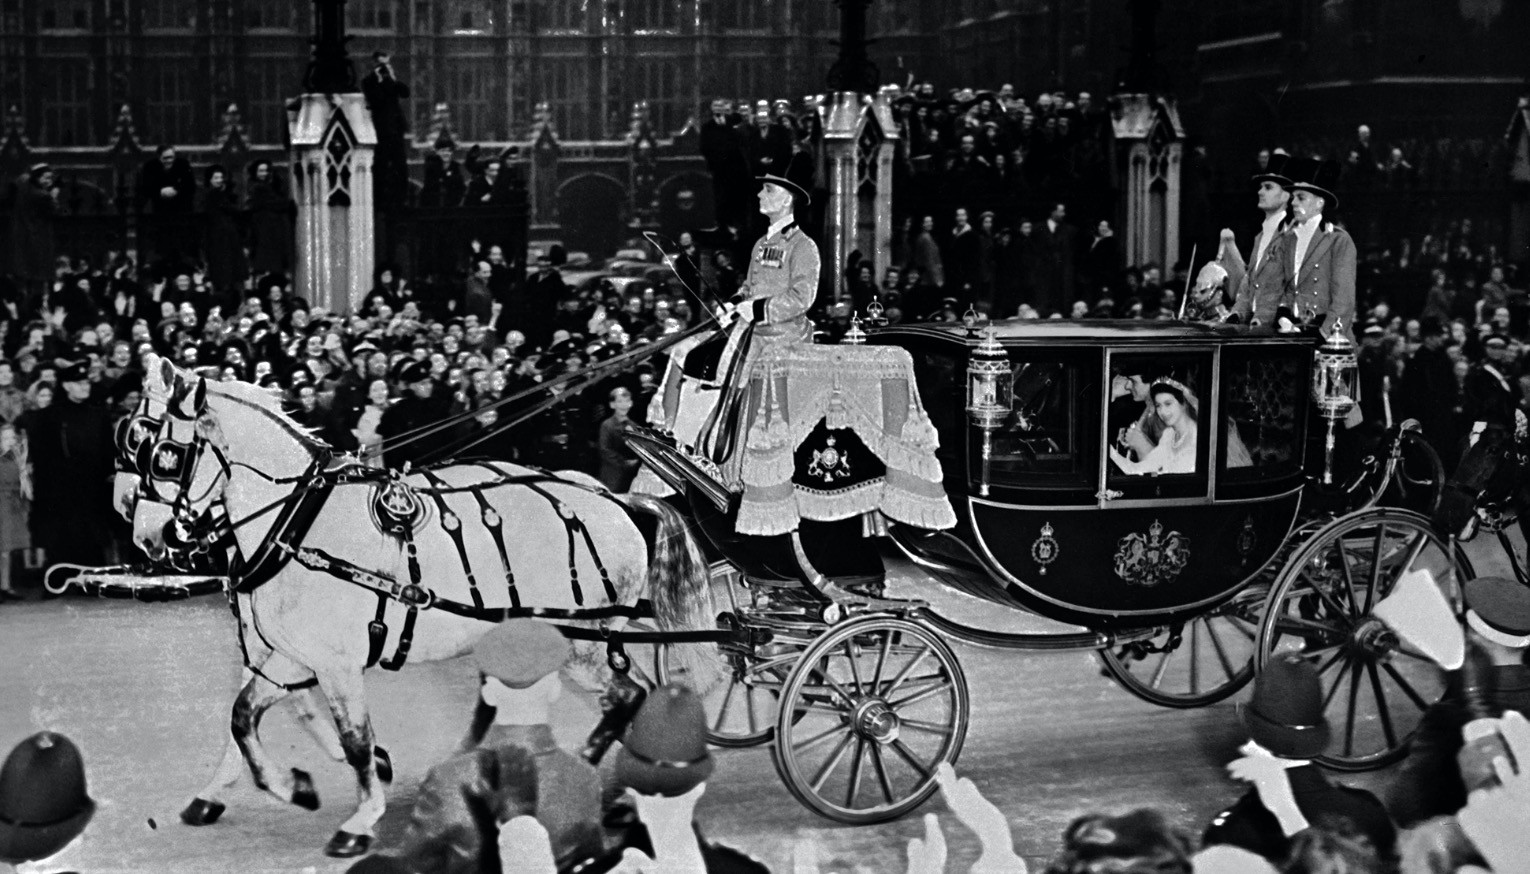 Queen Elizabeth II (in coach) and her husband Prince Philip are cheered by the crowd after their wedding ceremony in 1947.